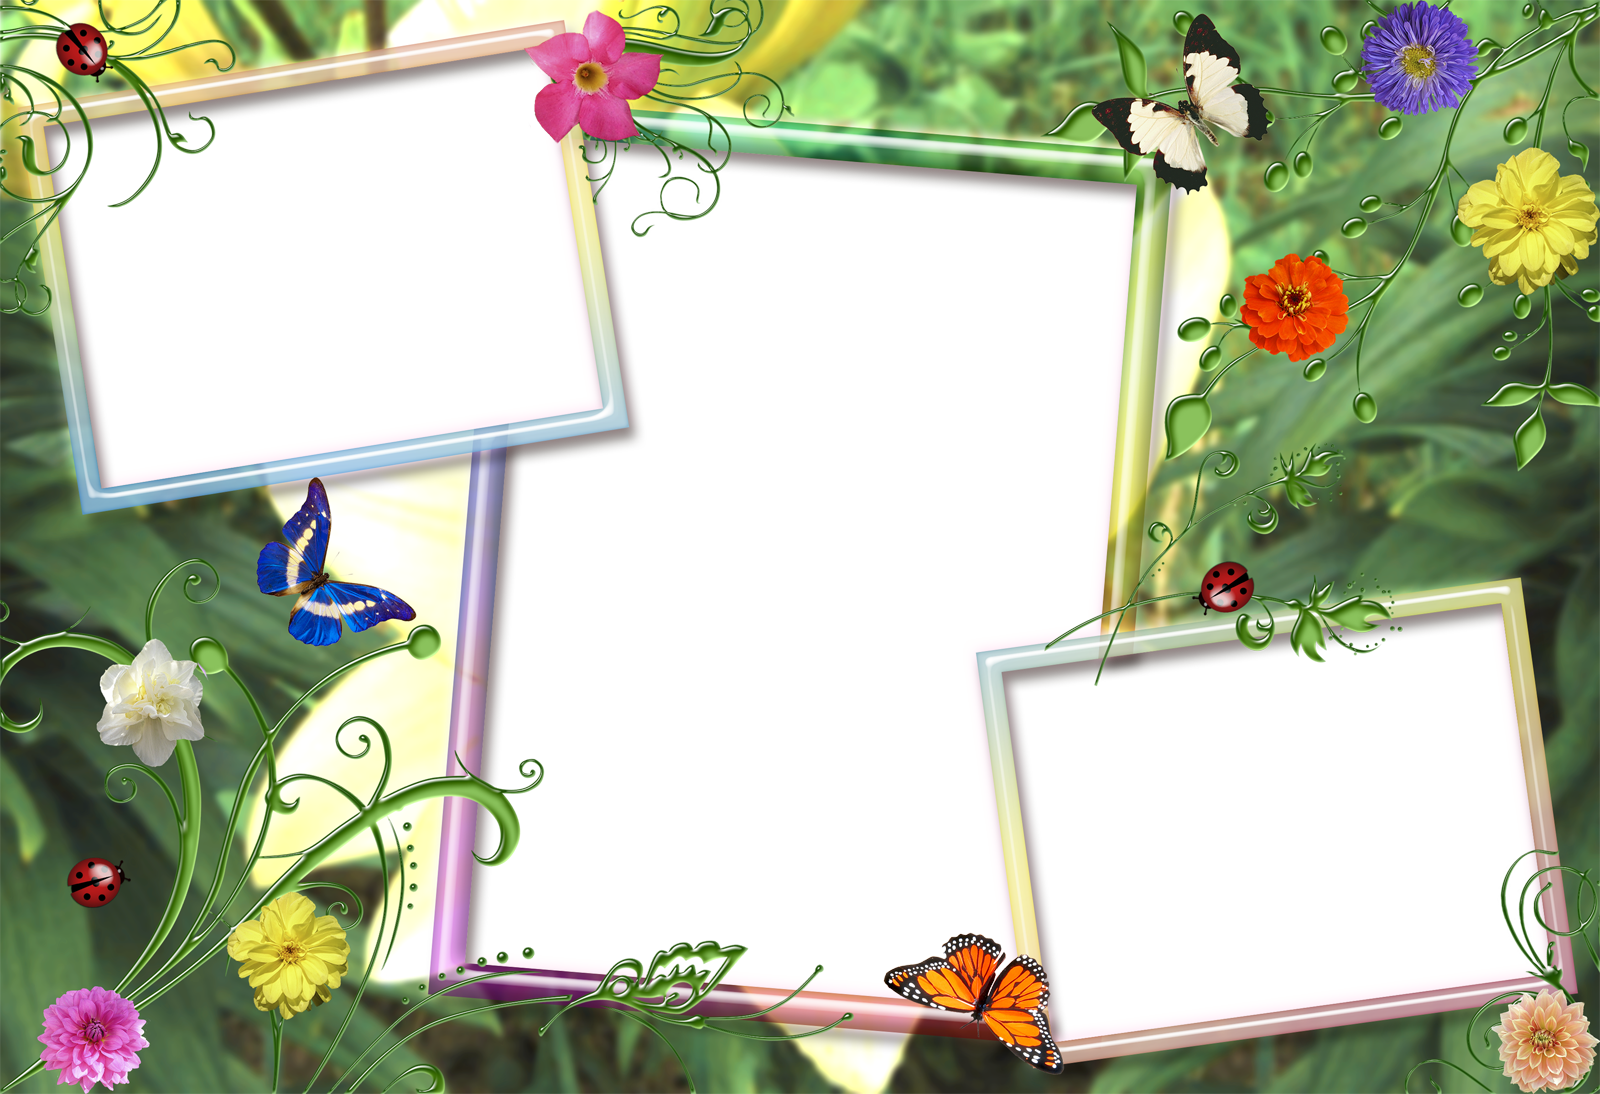 Nature frame png. Frames and borders image